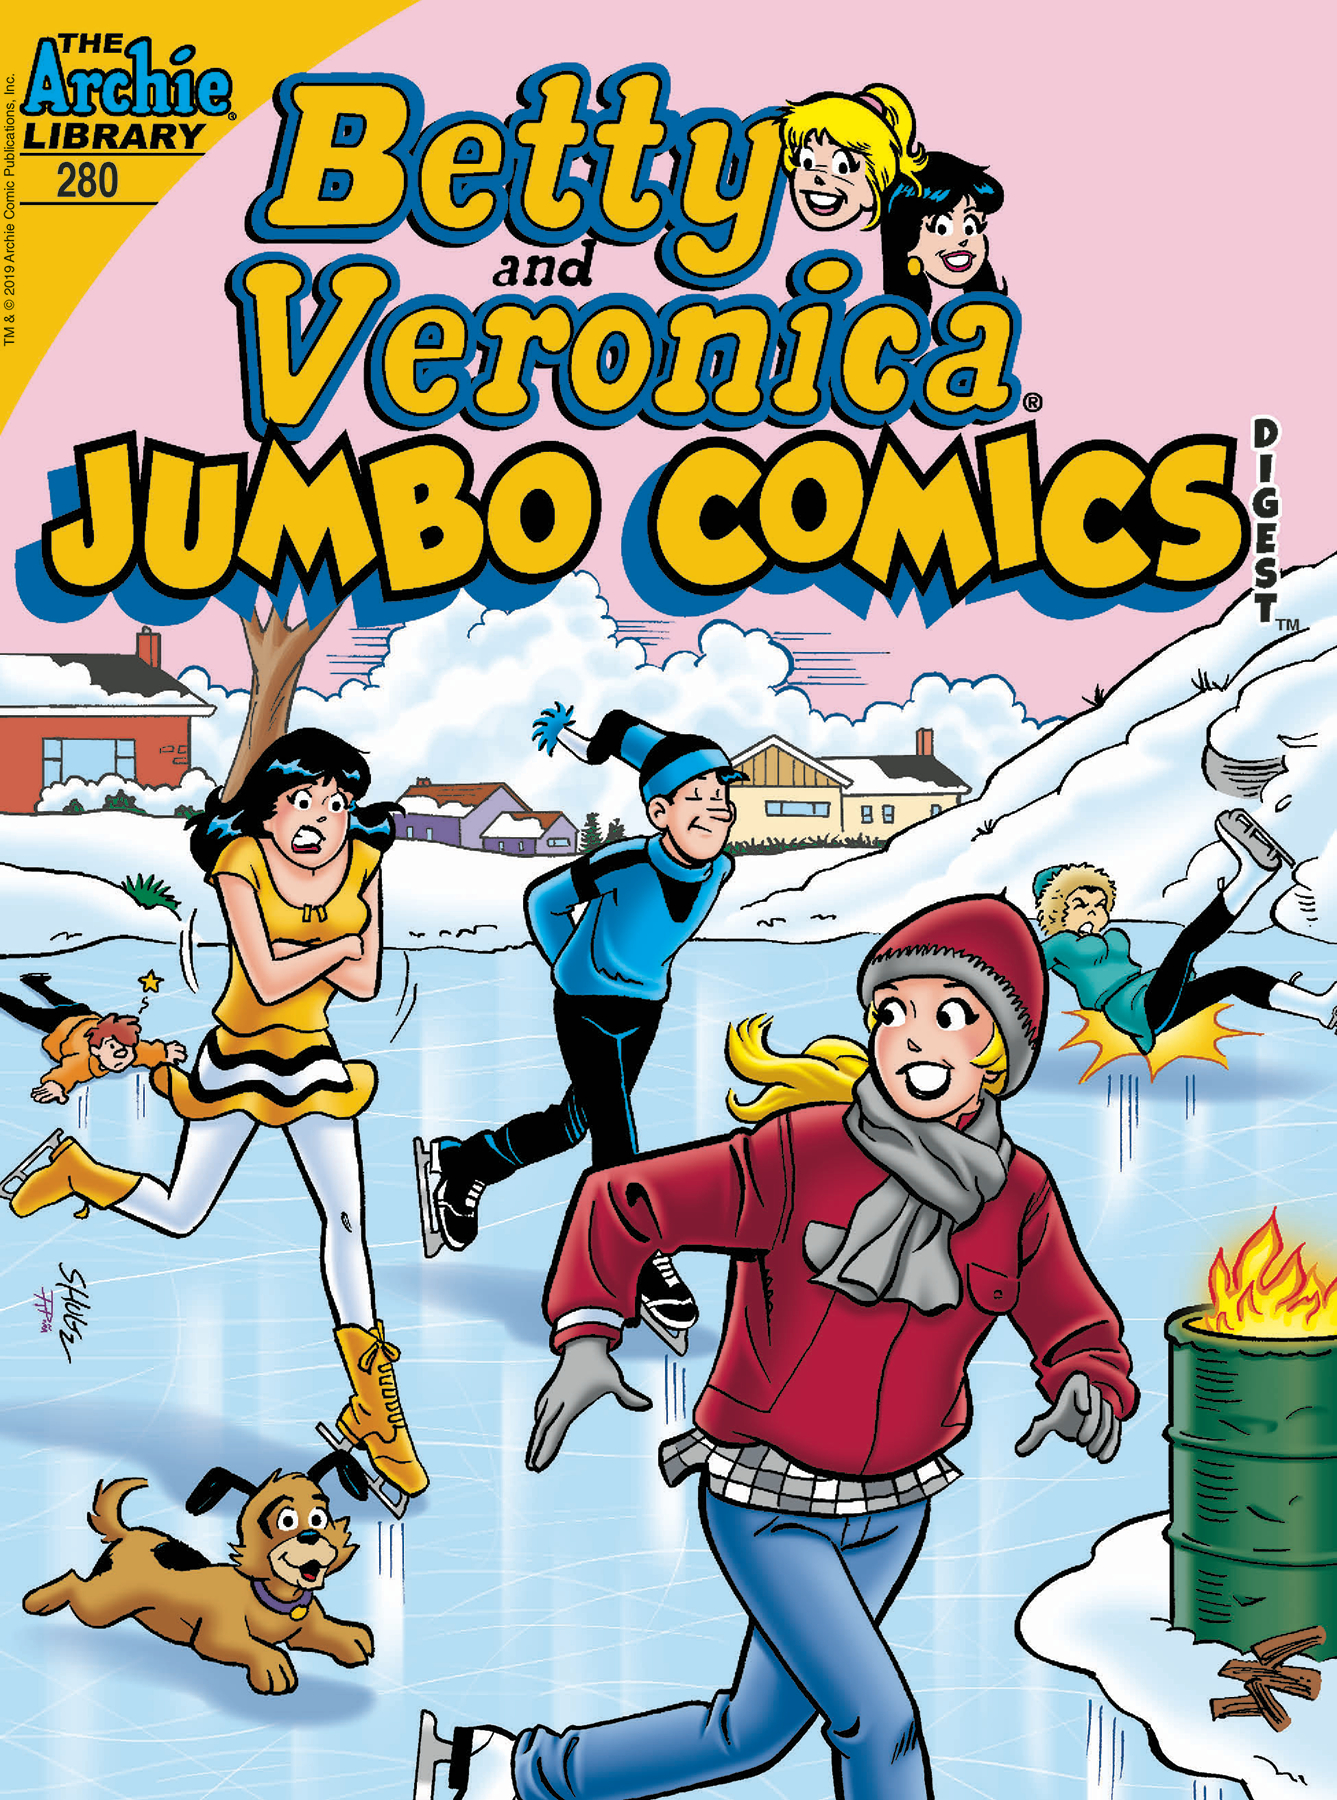 BETTY & VERONICA JUMBO COMICS DIGEST #280